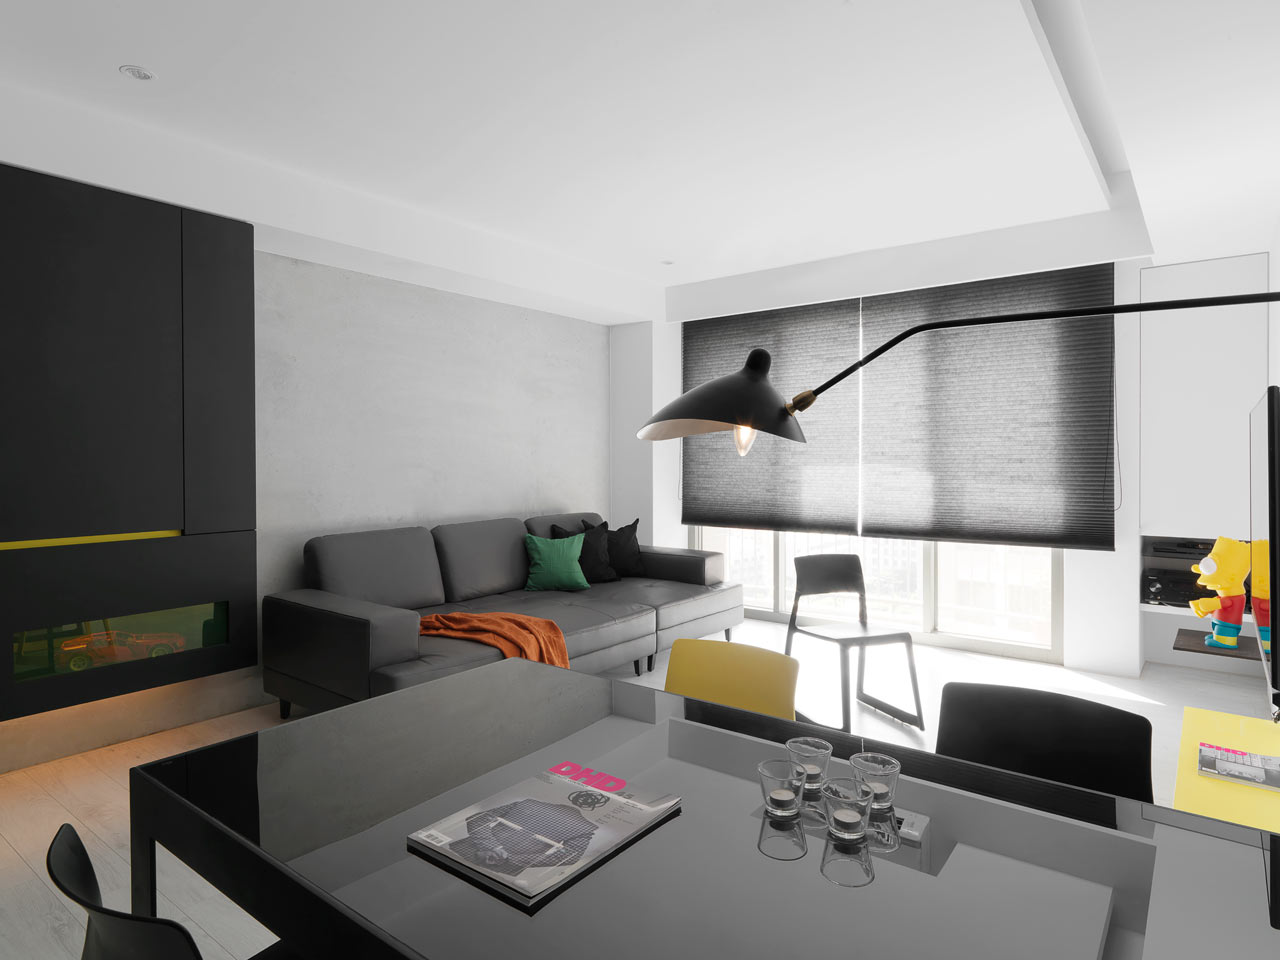 taichung h residence7 Modern Apartment with Bright Yellow Accents